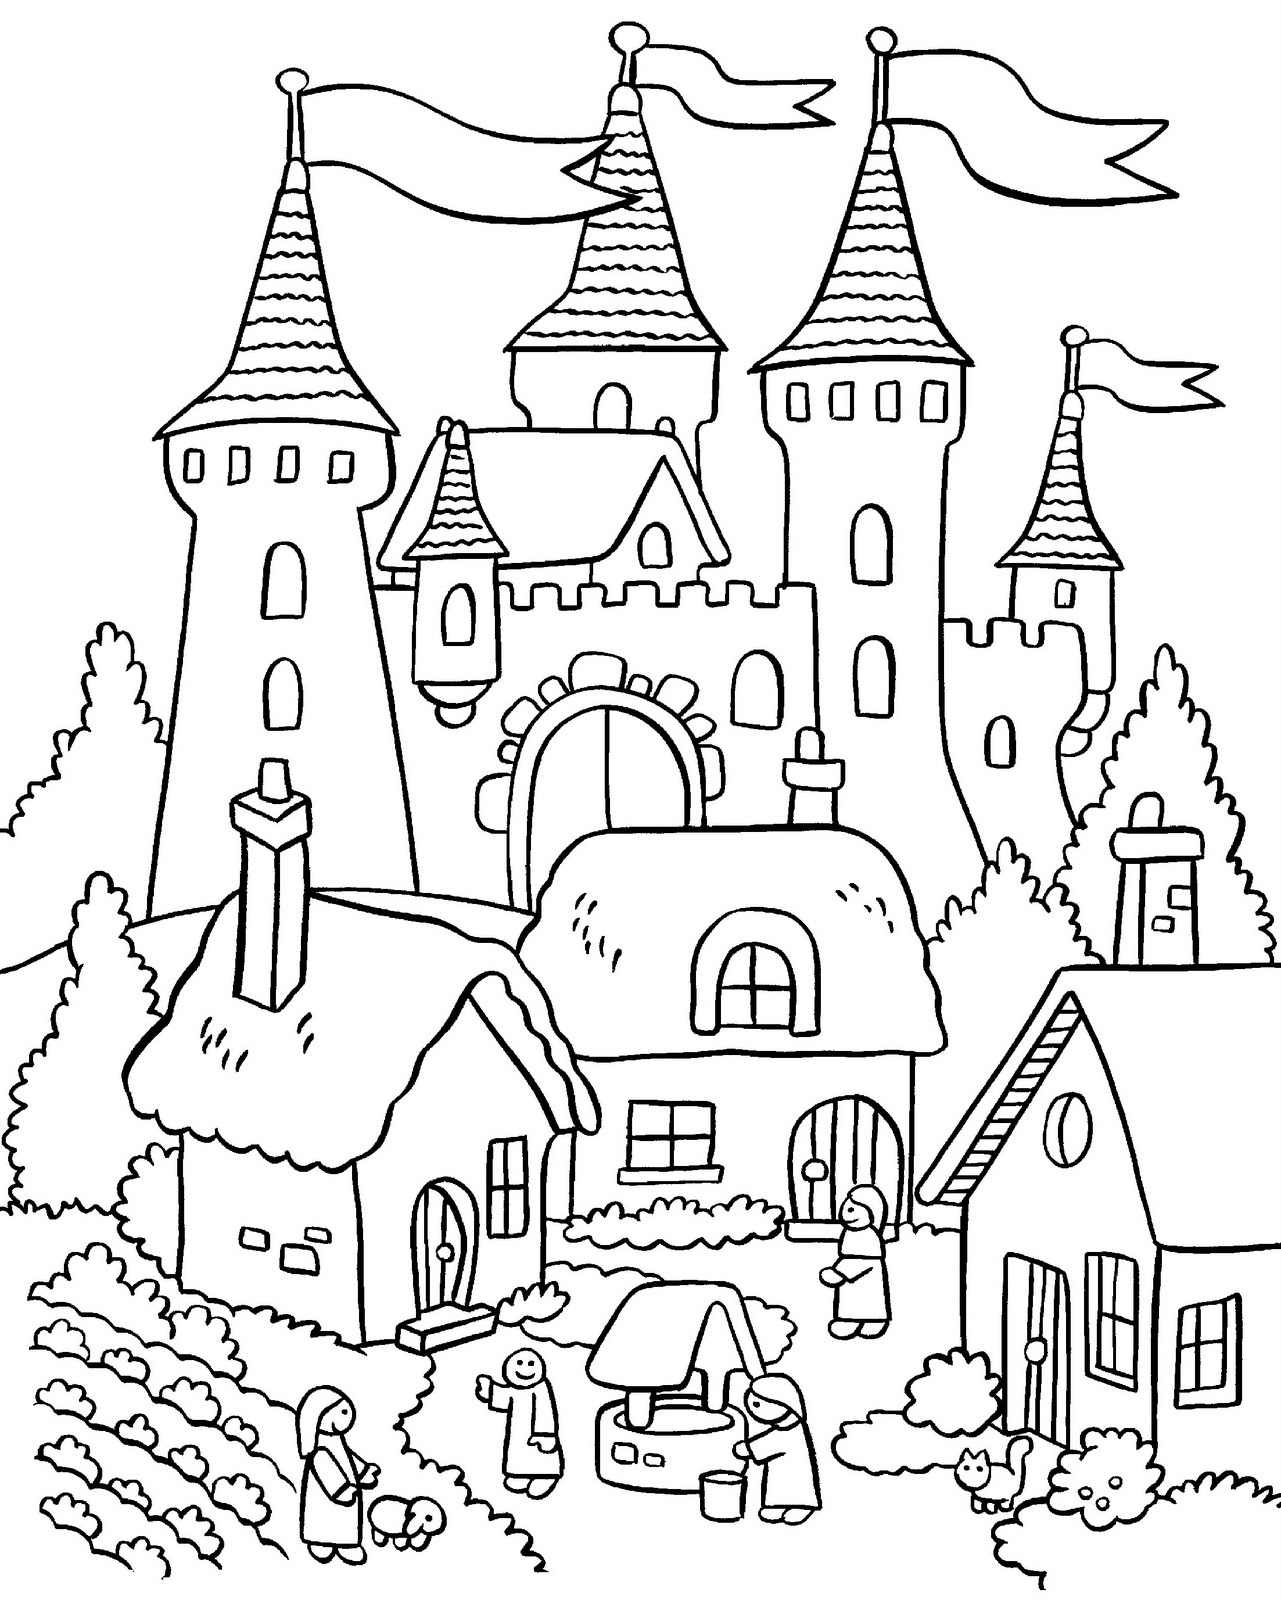 coloring pages house with garden my little house anna and the flower garden coloring pages pages garden coloring house with